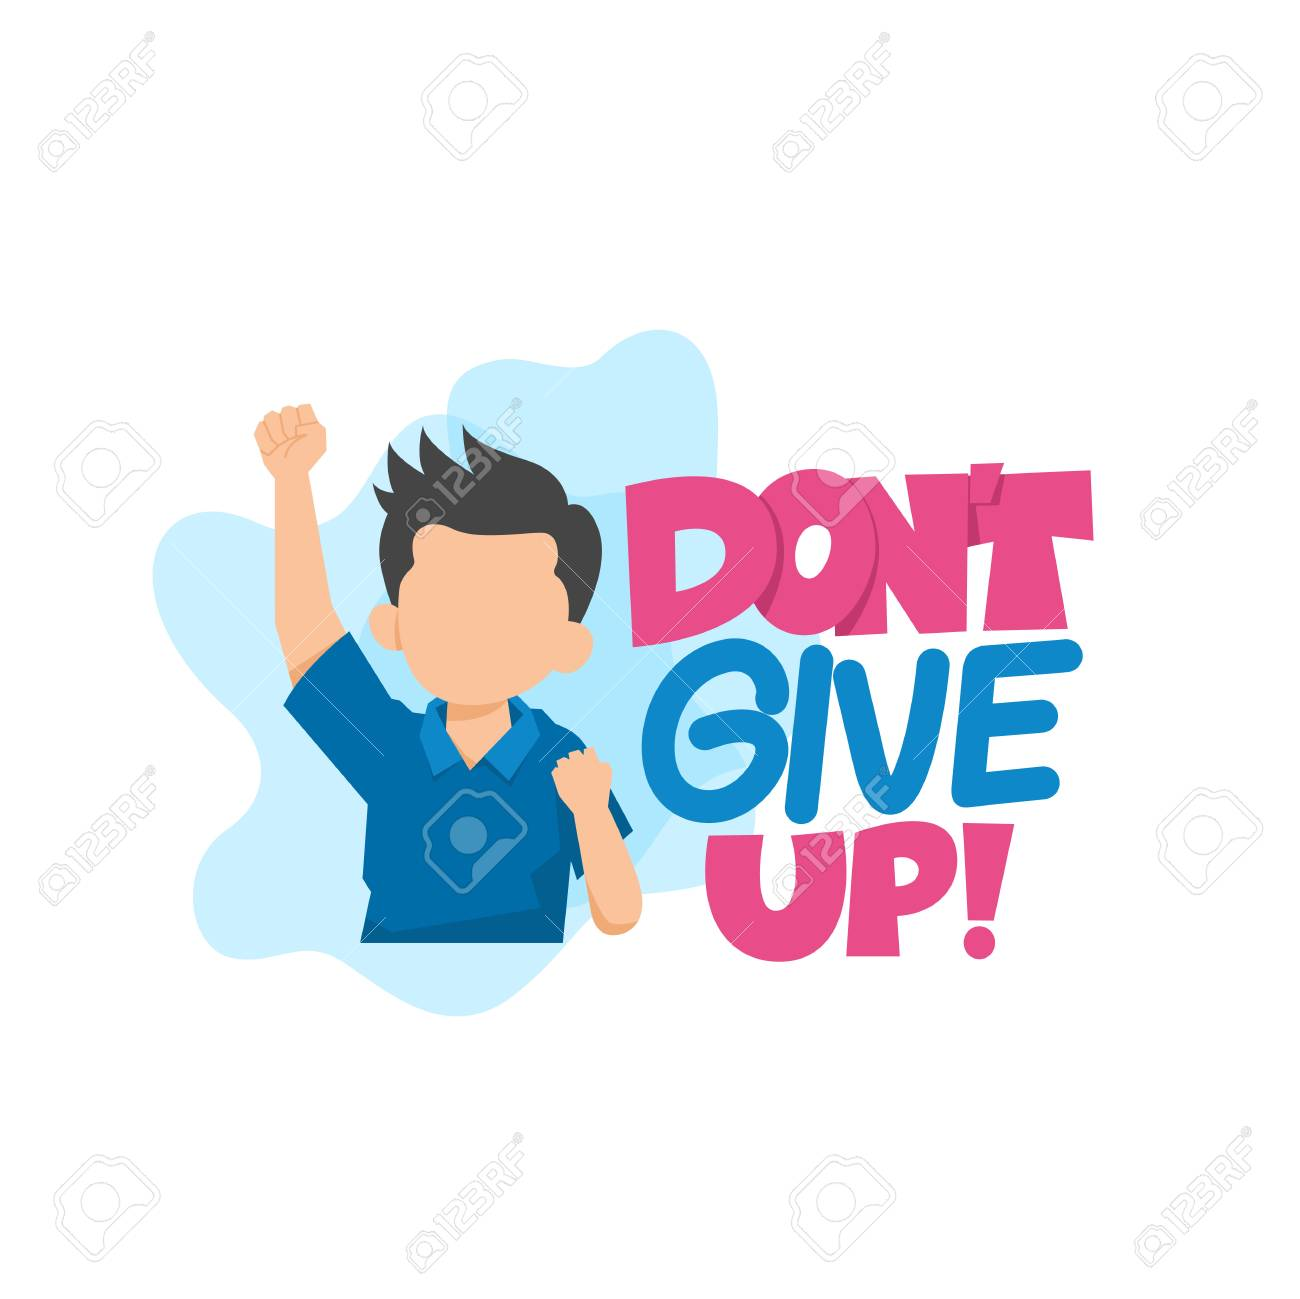 Don't Give Up Typography Vector Illustration.